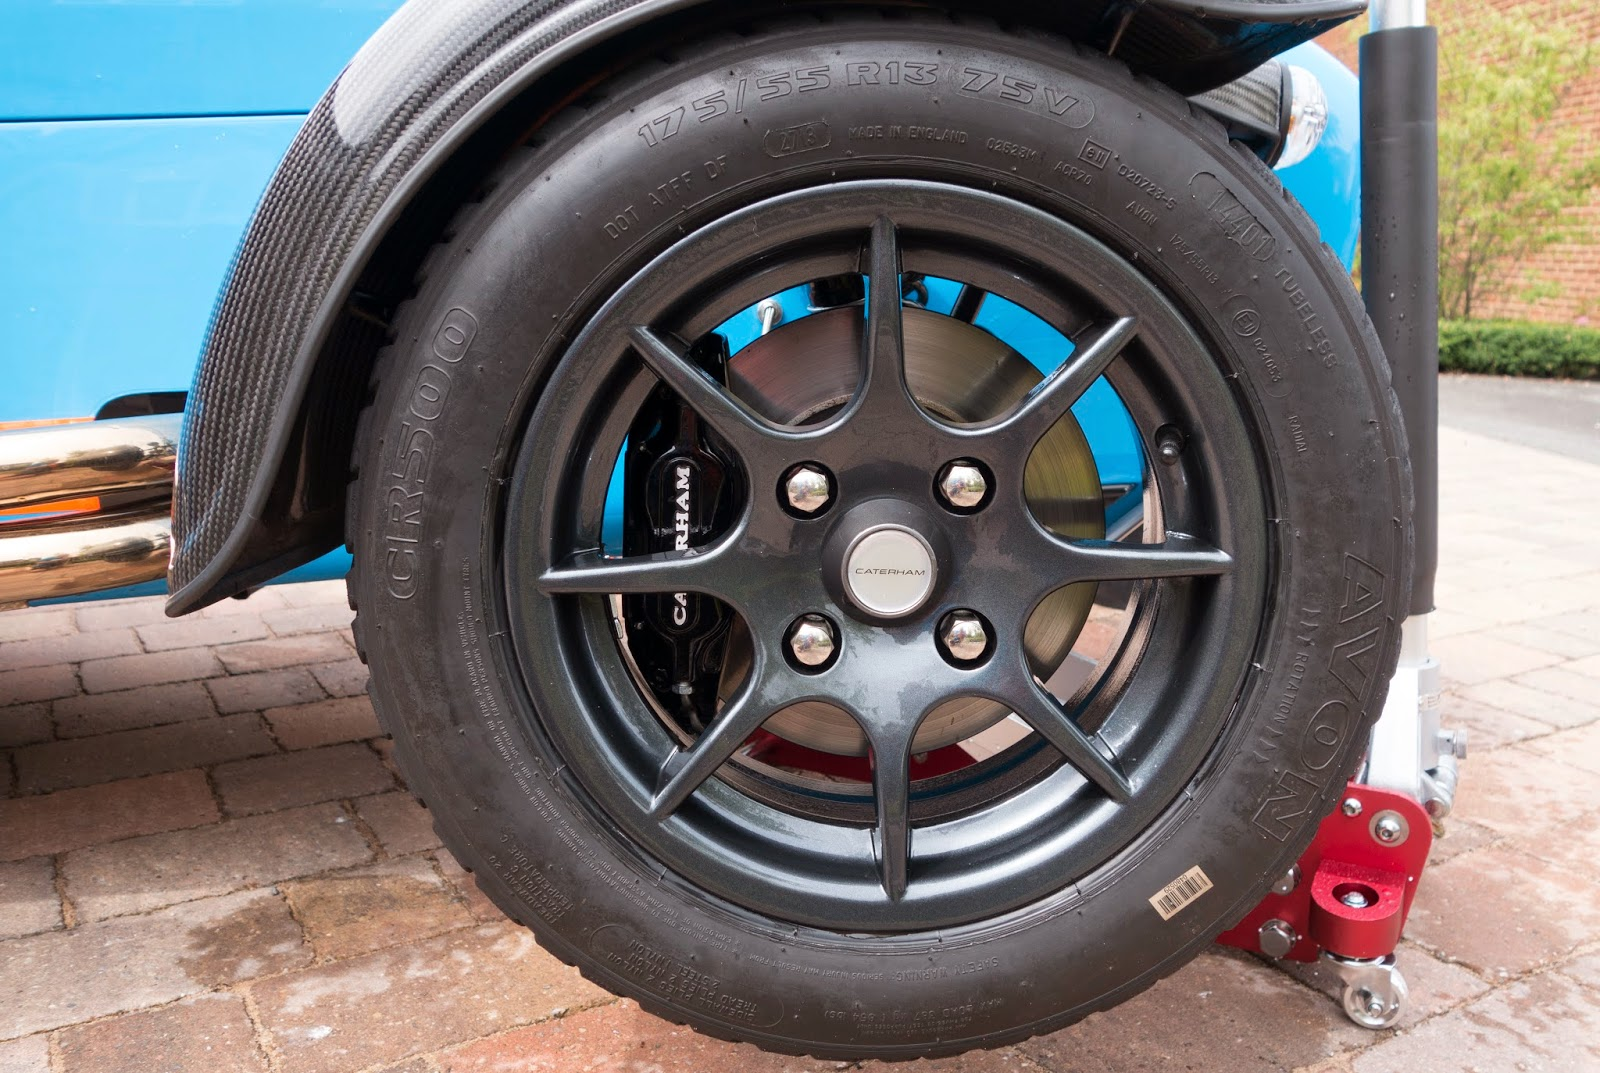 Caterham R500 13 inch wheel refitted to car after cleaning and Gtechniq C5 wheel armour being applied.